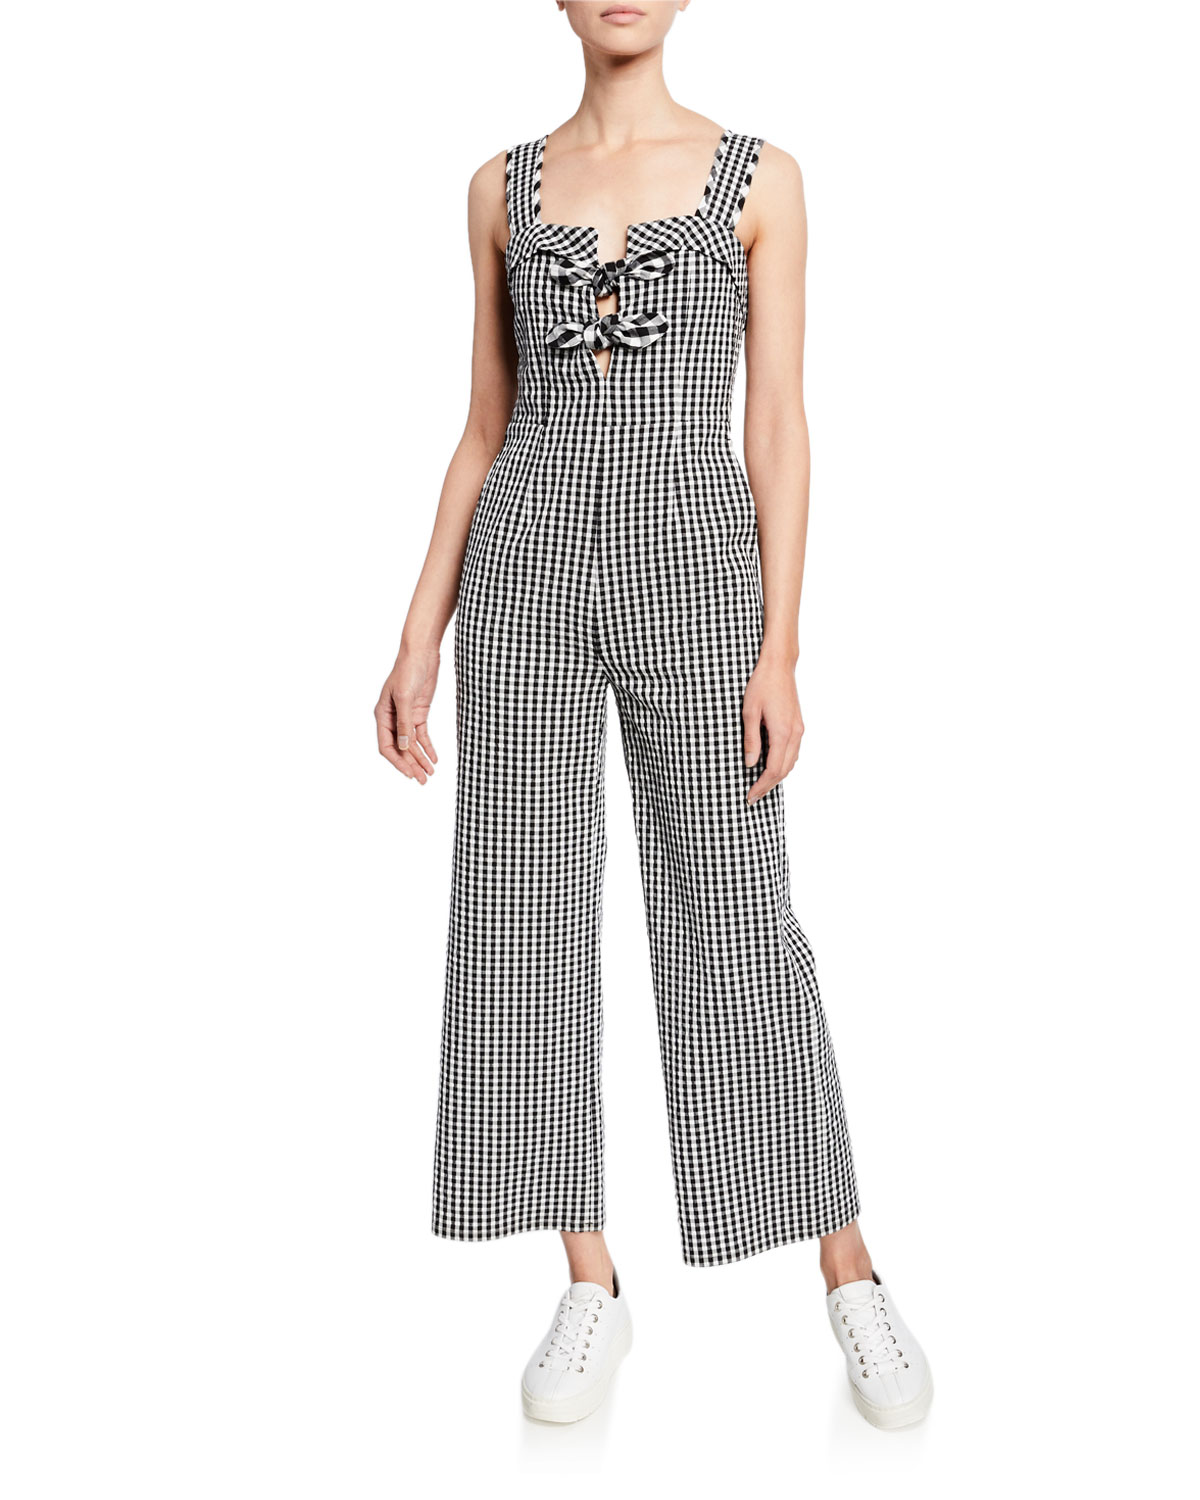 Tanya Taylor Rosalind Gingham Sleeveless Wide-Leg Jumpsuit, BLACK WHITE